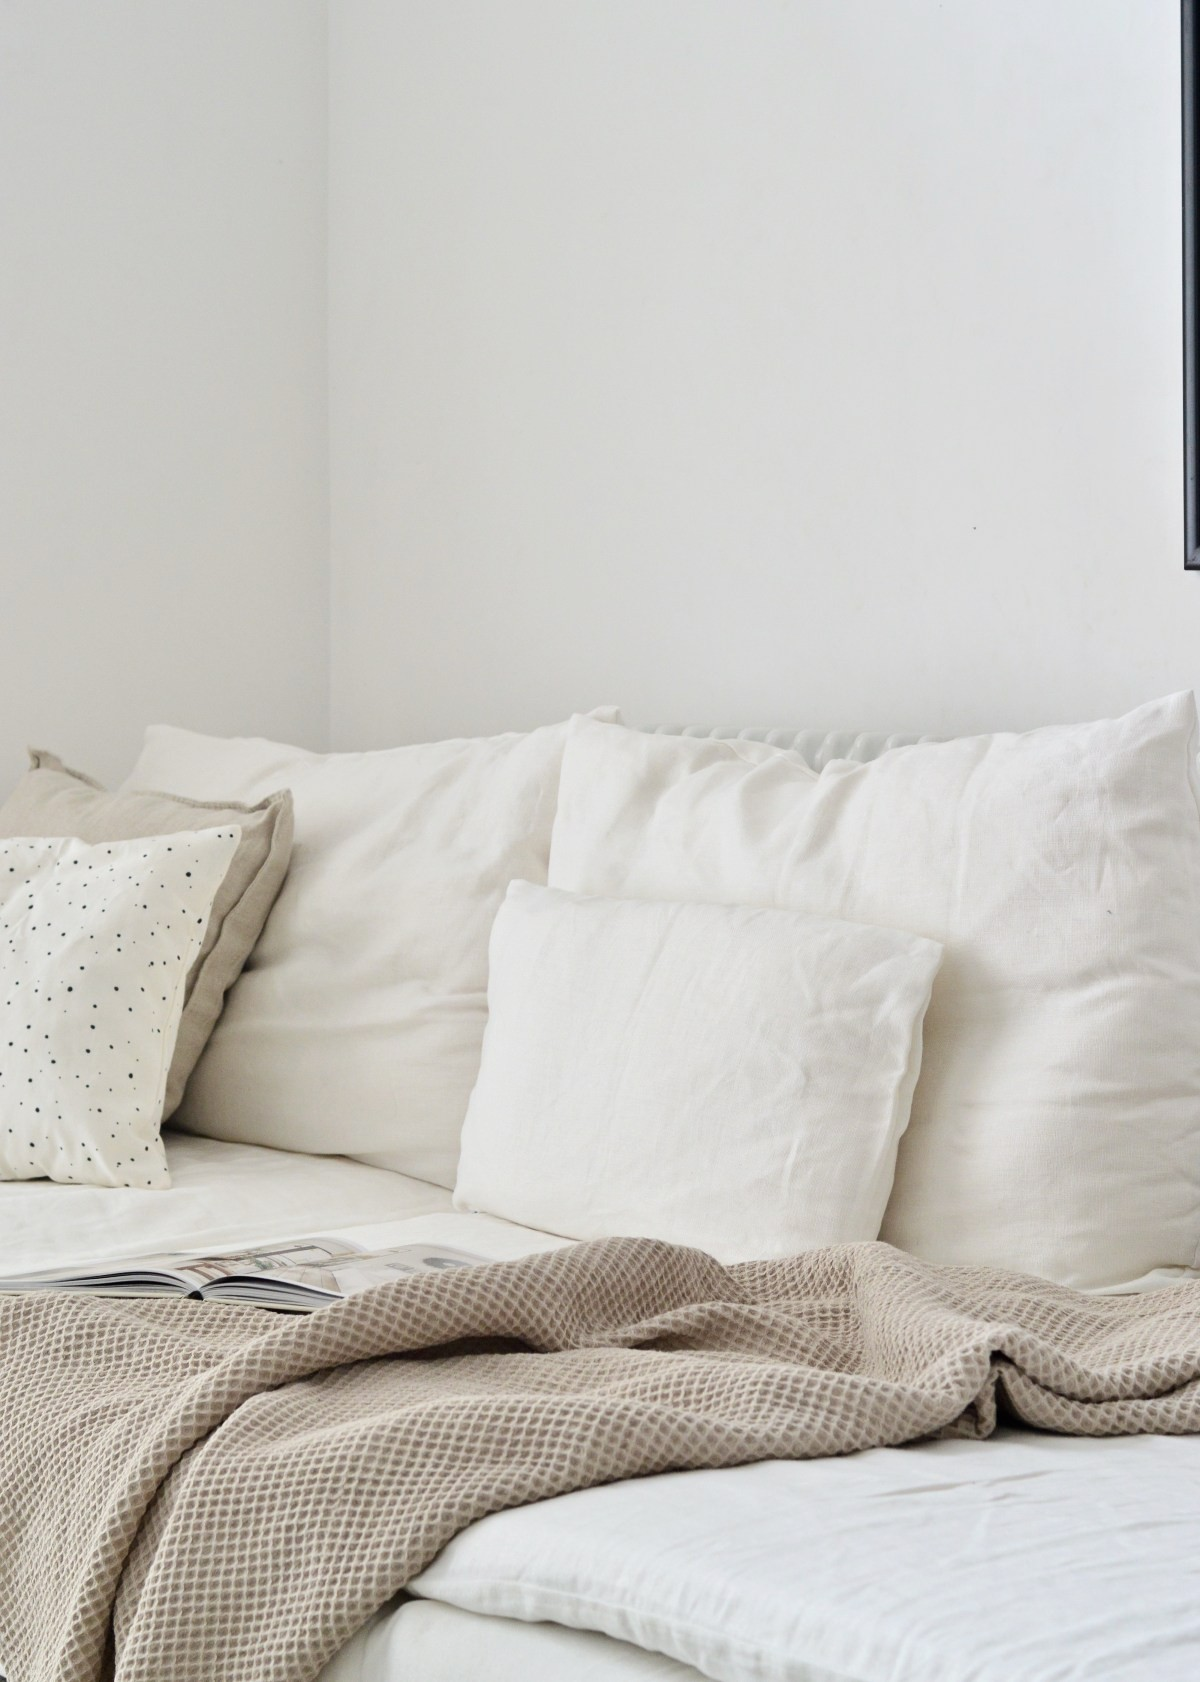 linen covers for Ikea couch